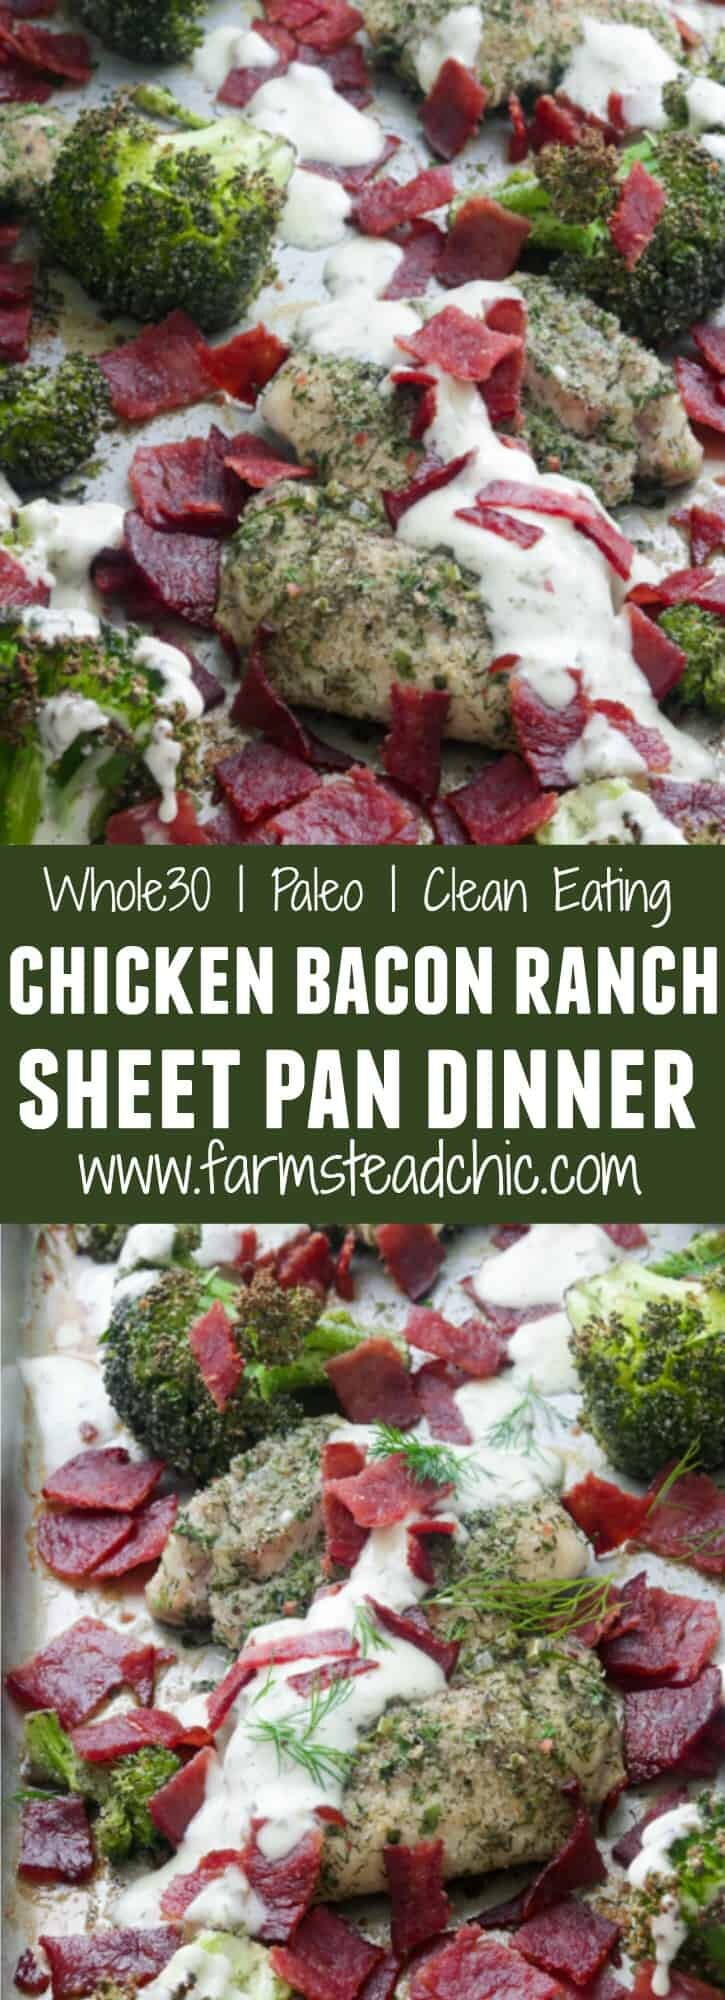 This Paleo and Whole30 Chicken Bacon Ranch Sheet Pan Dinner combines tender, juicy chicken thighs with roasted broccoli, crispy bacon and typical ranch dressing herbs and seasonings like chives, dill, parsley and onion and garlic powder into a one-dish, quick and tasty sheet pan dinner. Gluten free, grain free, dairy free, low carb.